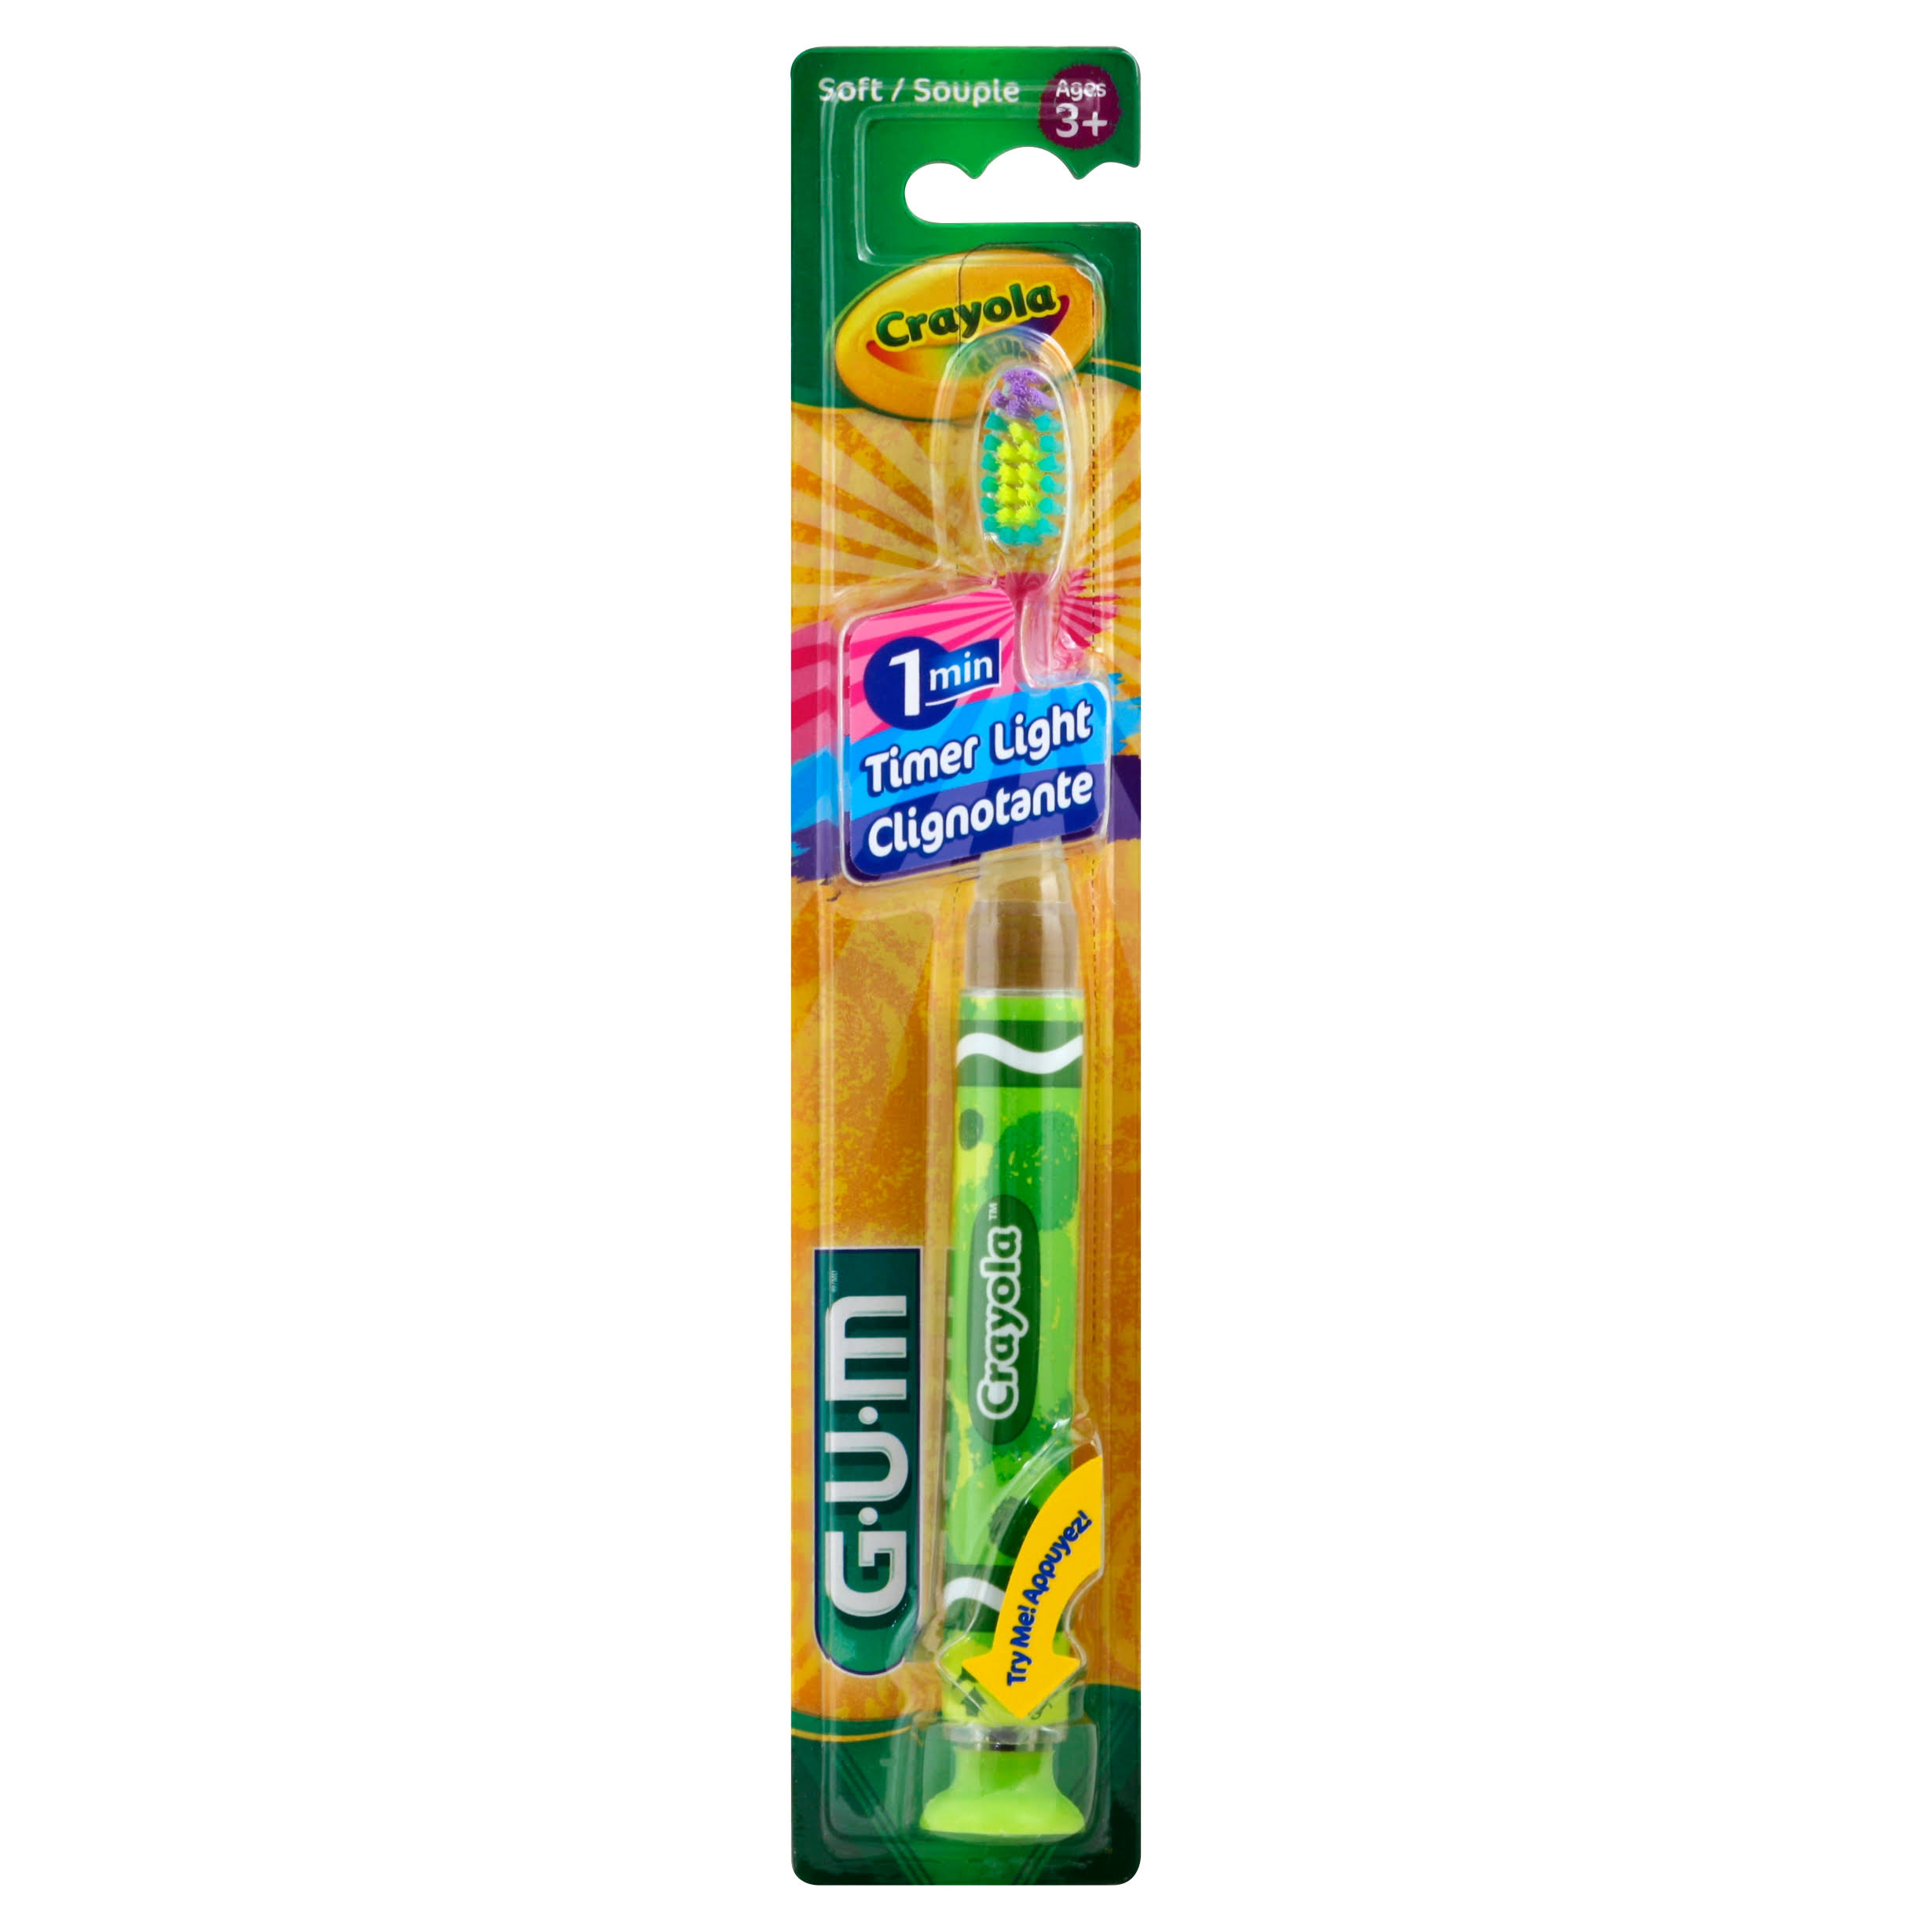 Gum Crayola Flashing Light Toothbrush - Soft